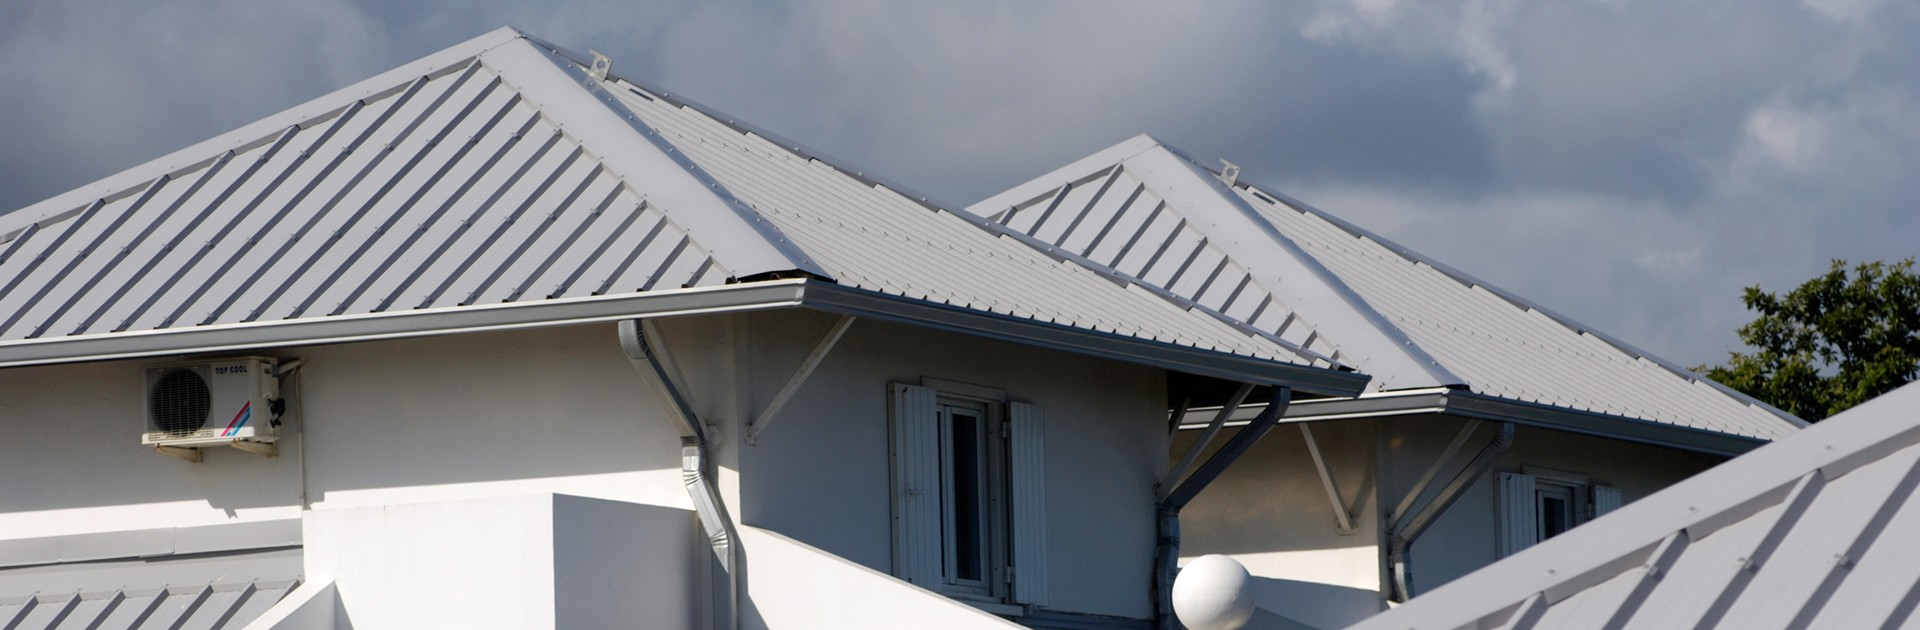 How Long Should A Roof Last Professional Roofers In